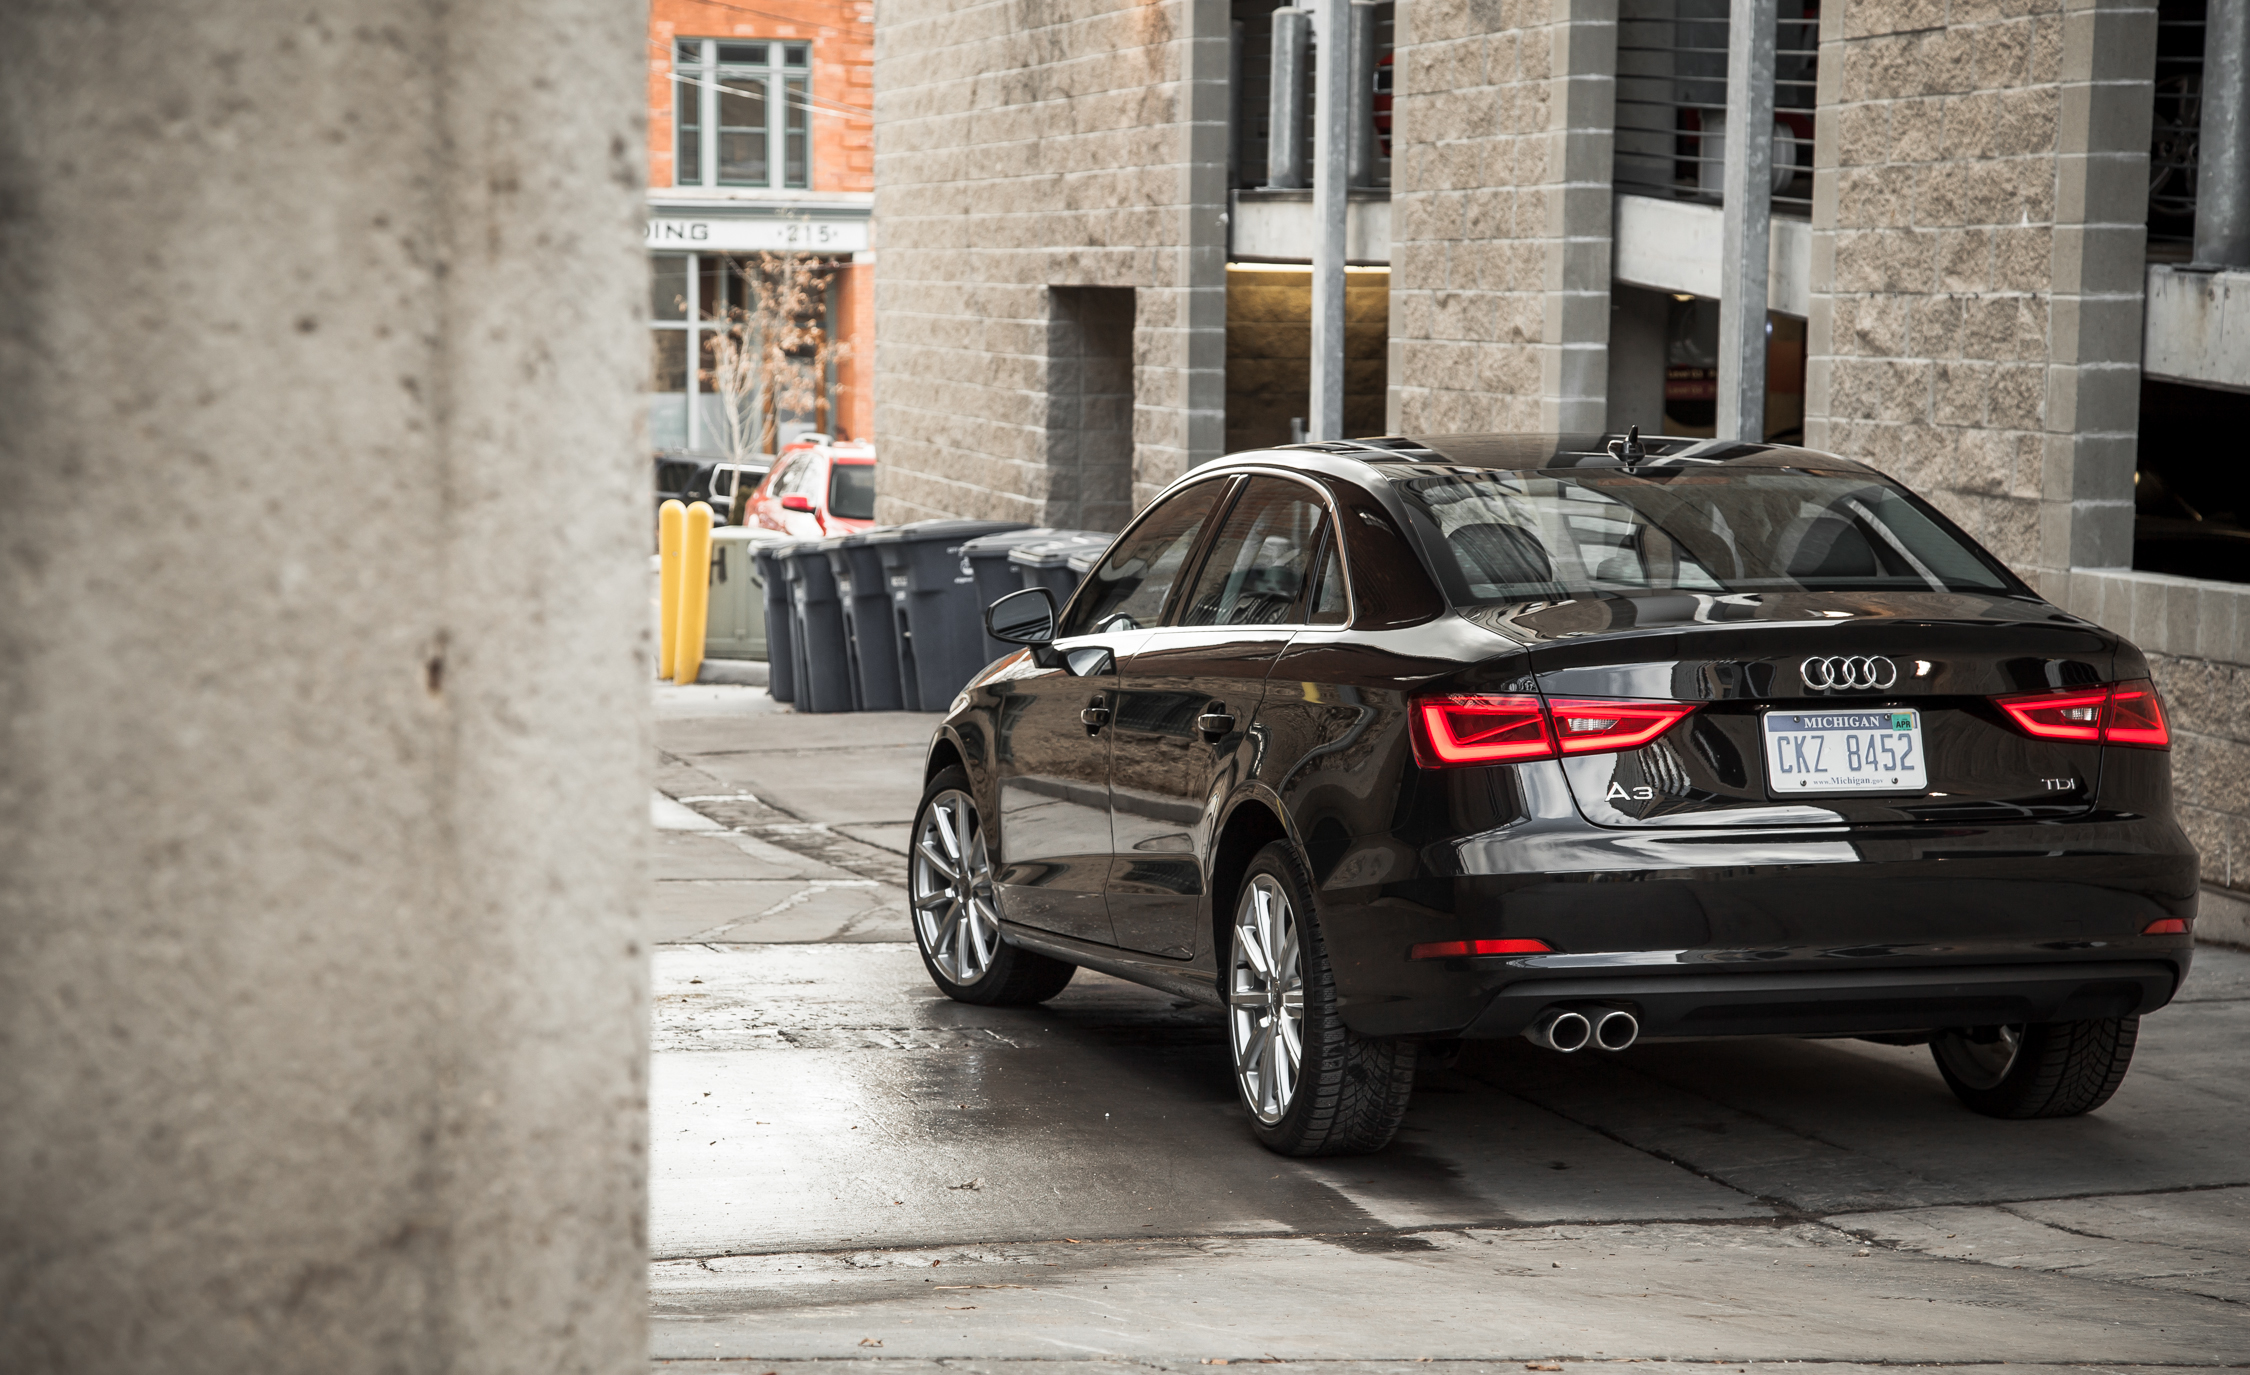 2015 Audi A3 TDI Exterior Rear (Photo 25 of 50)